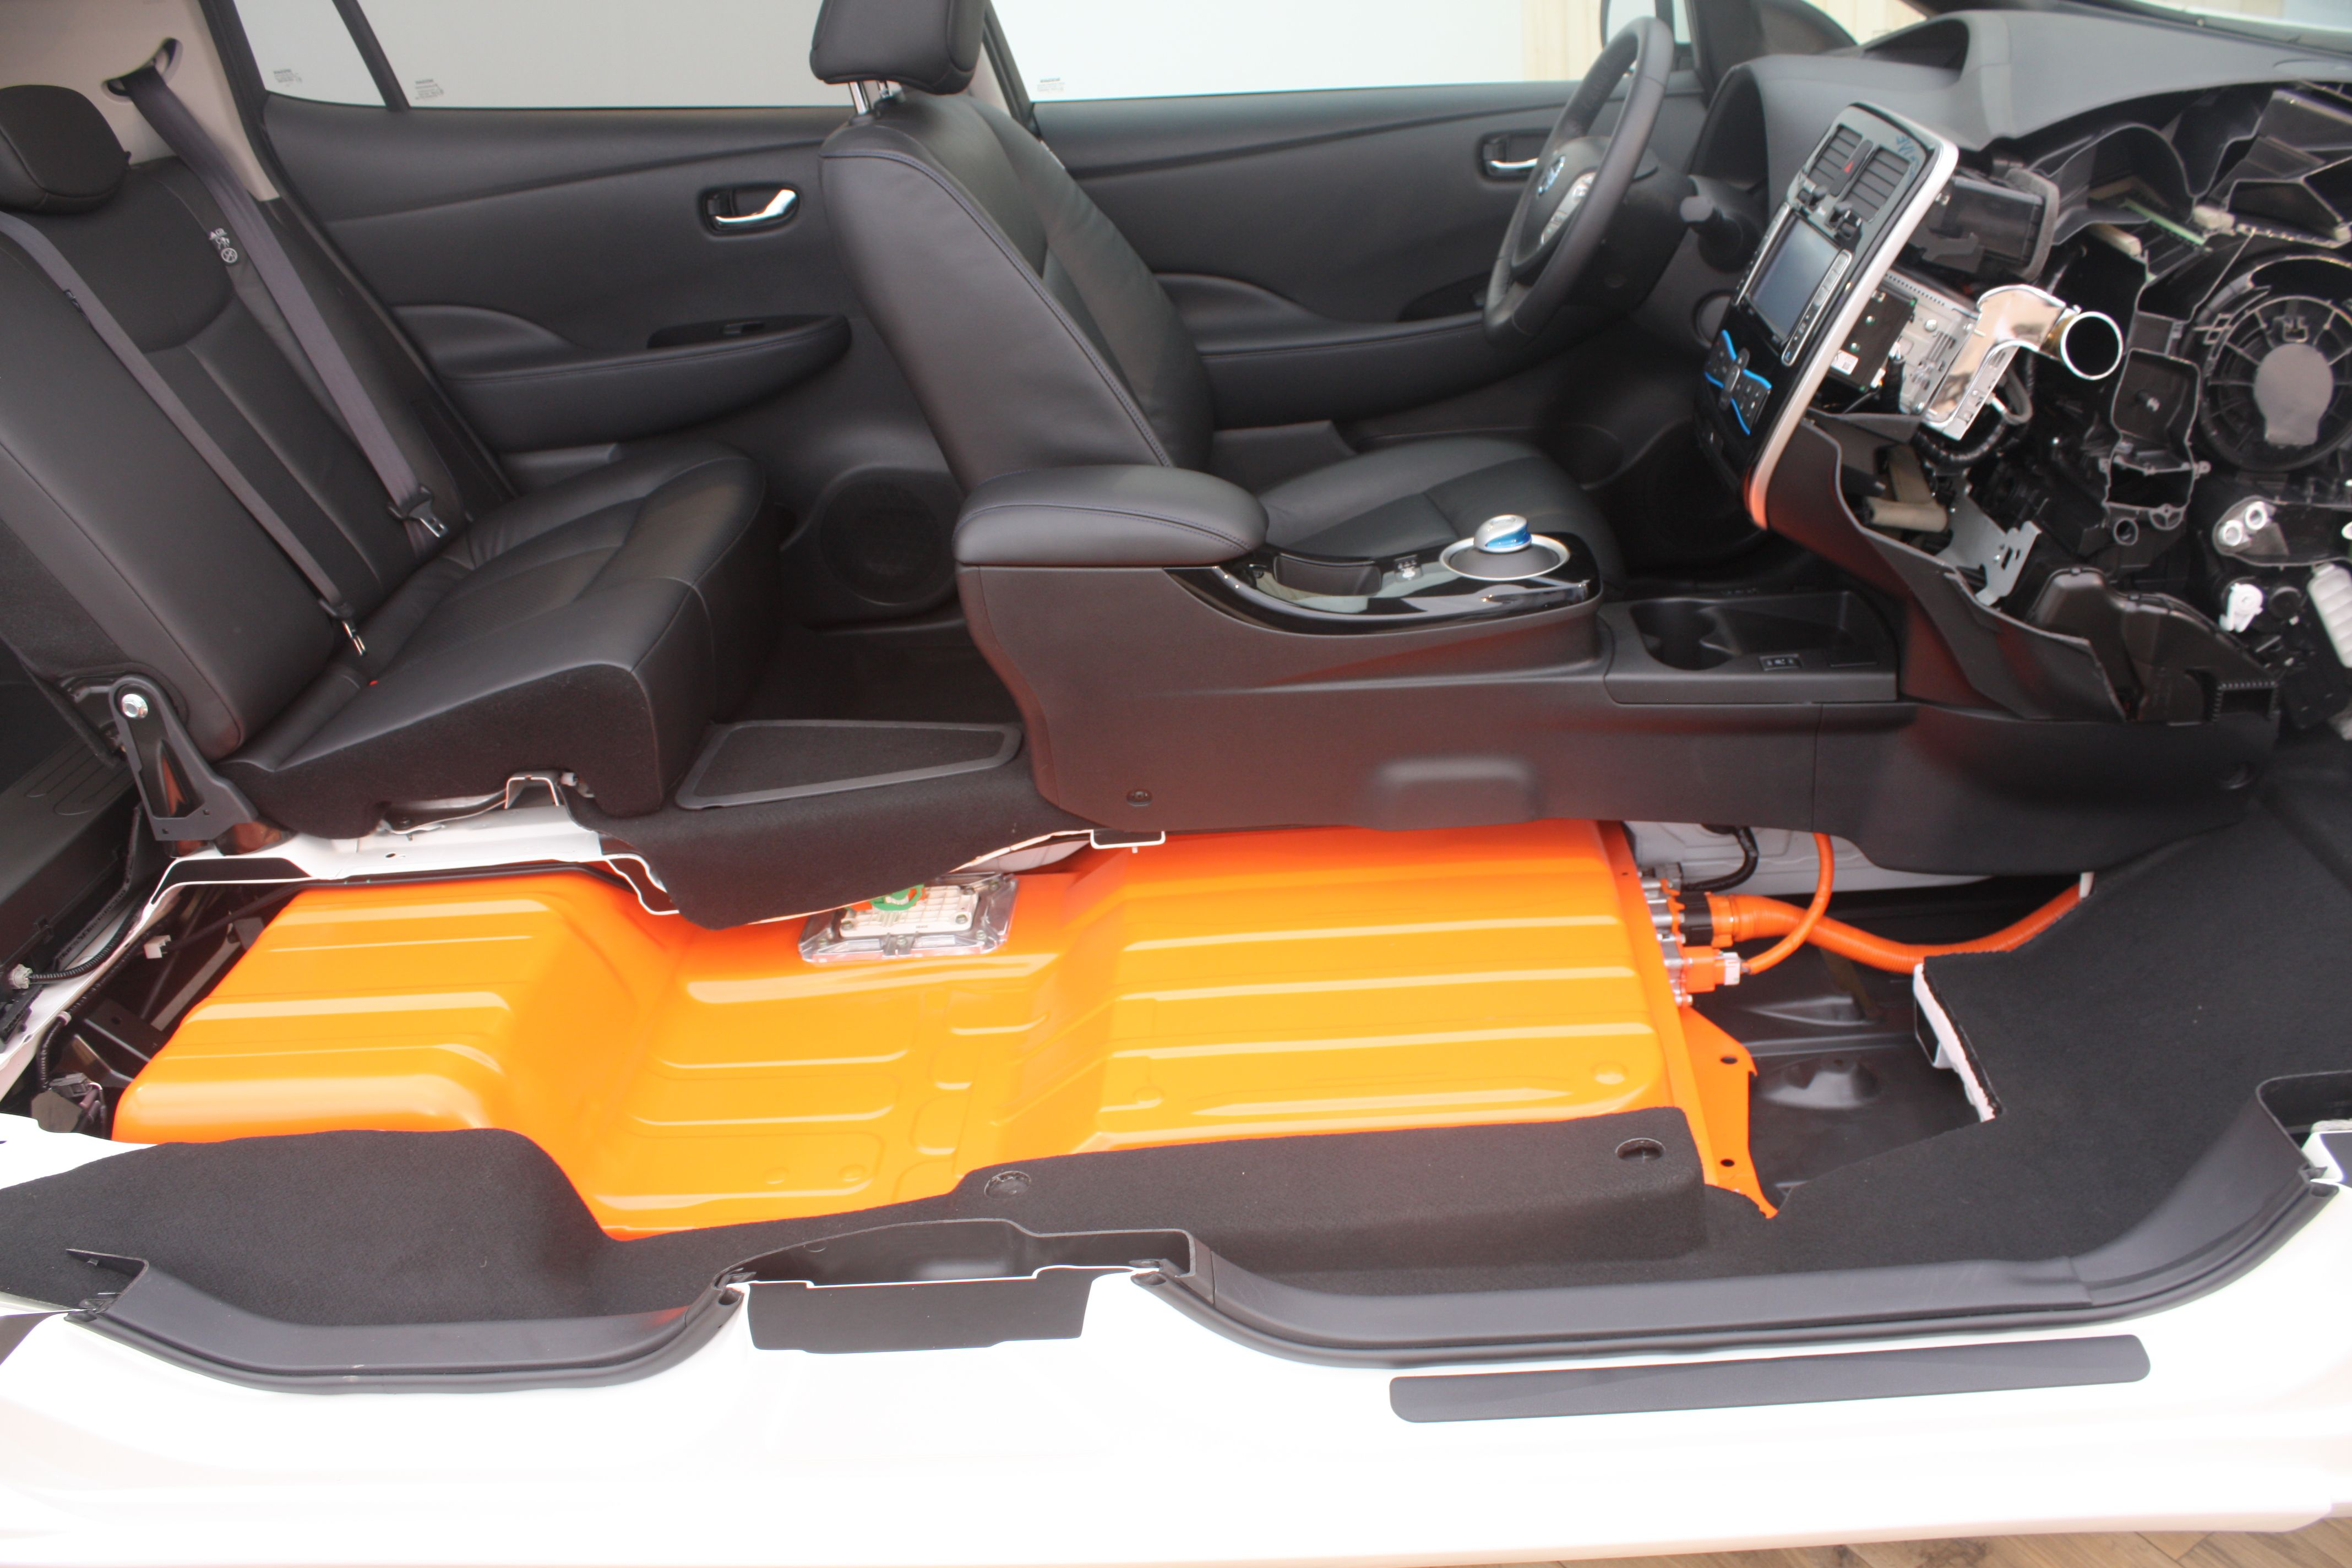 The nissan leaf chevy volt and tesla model s use different batteries and